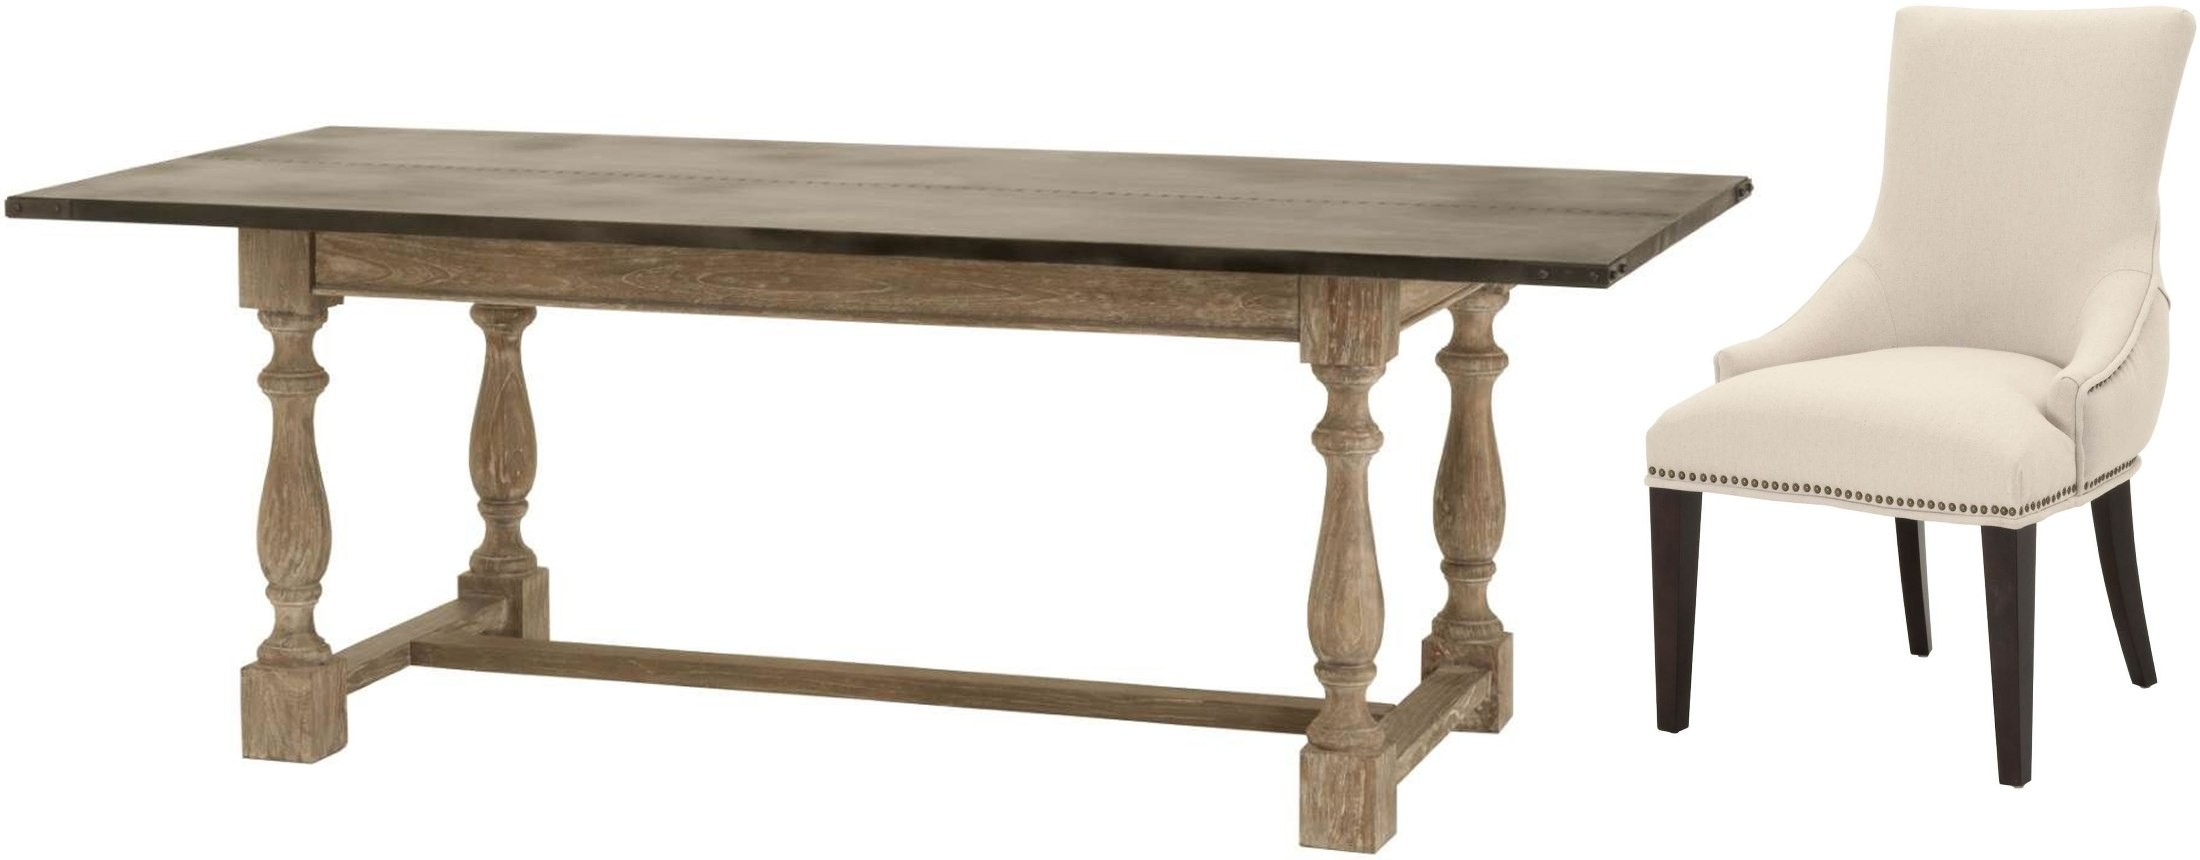 Ville drift grey dining room set from orient express for Table 6 7 8 9